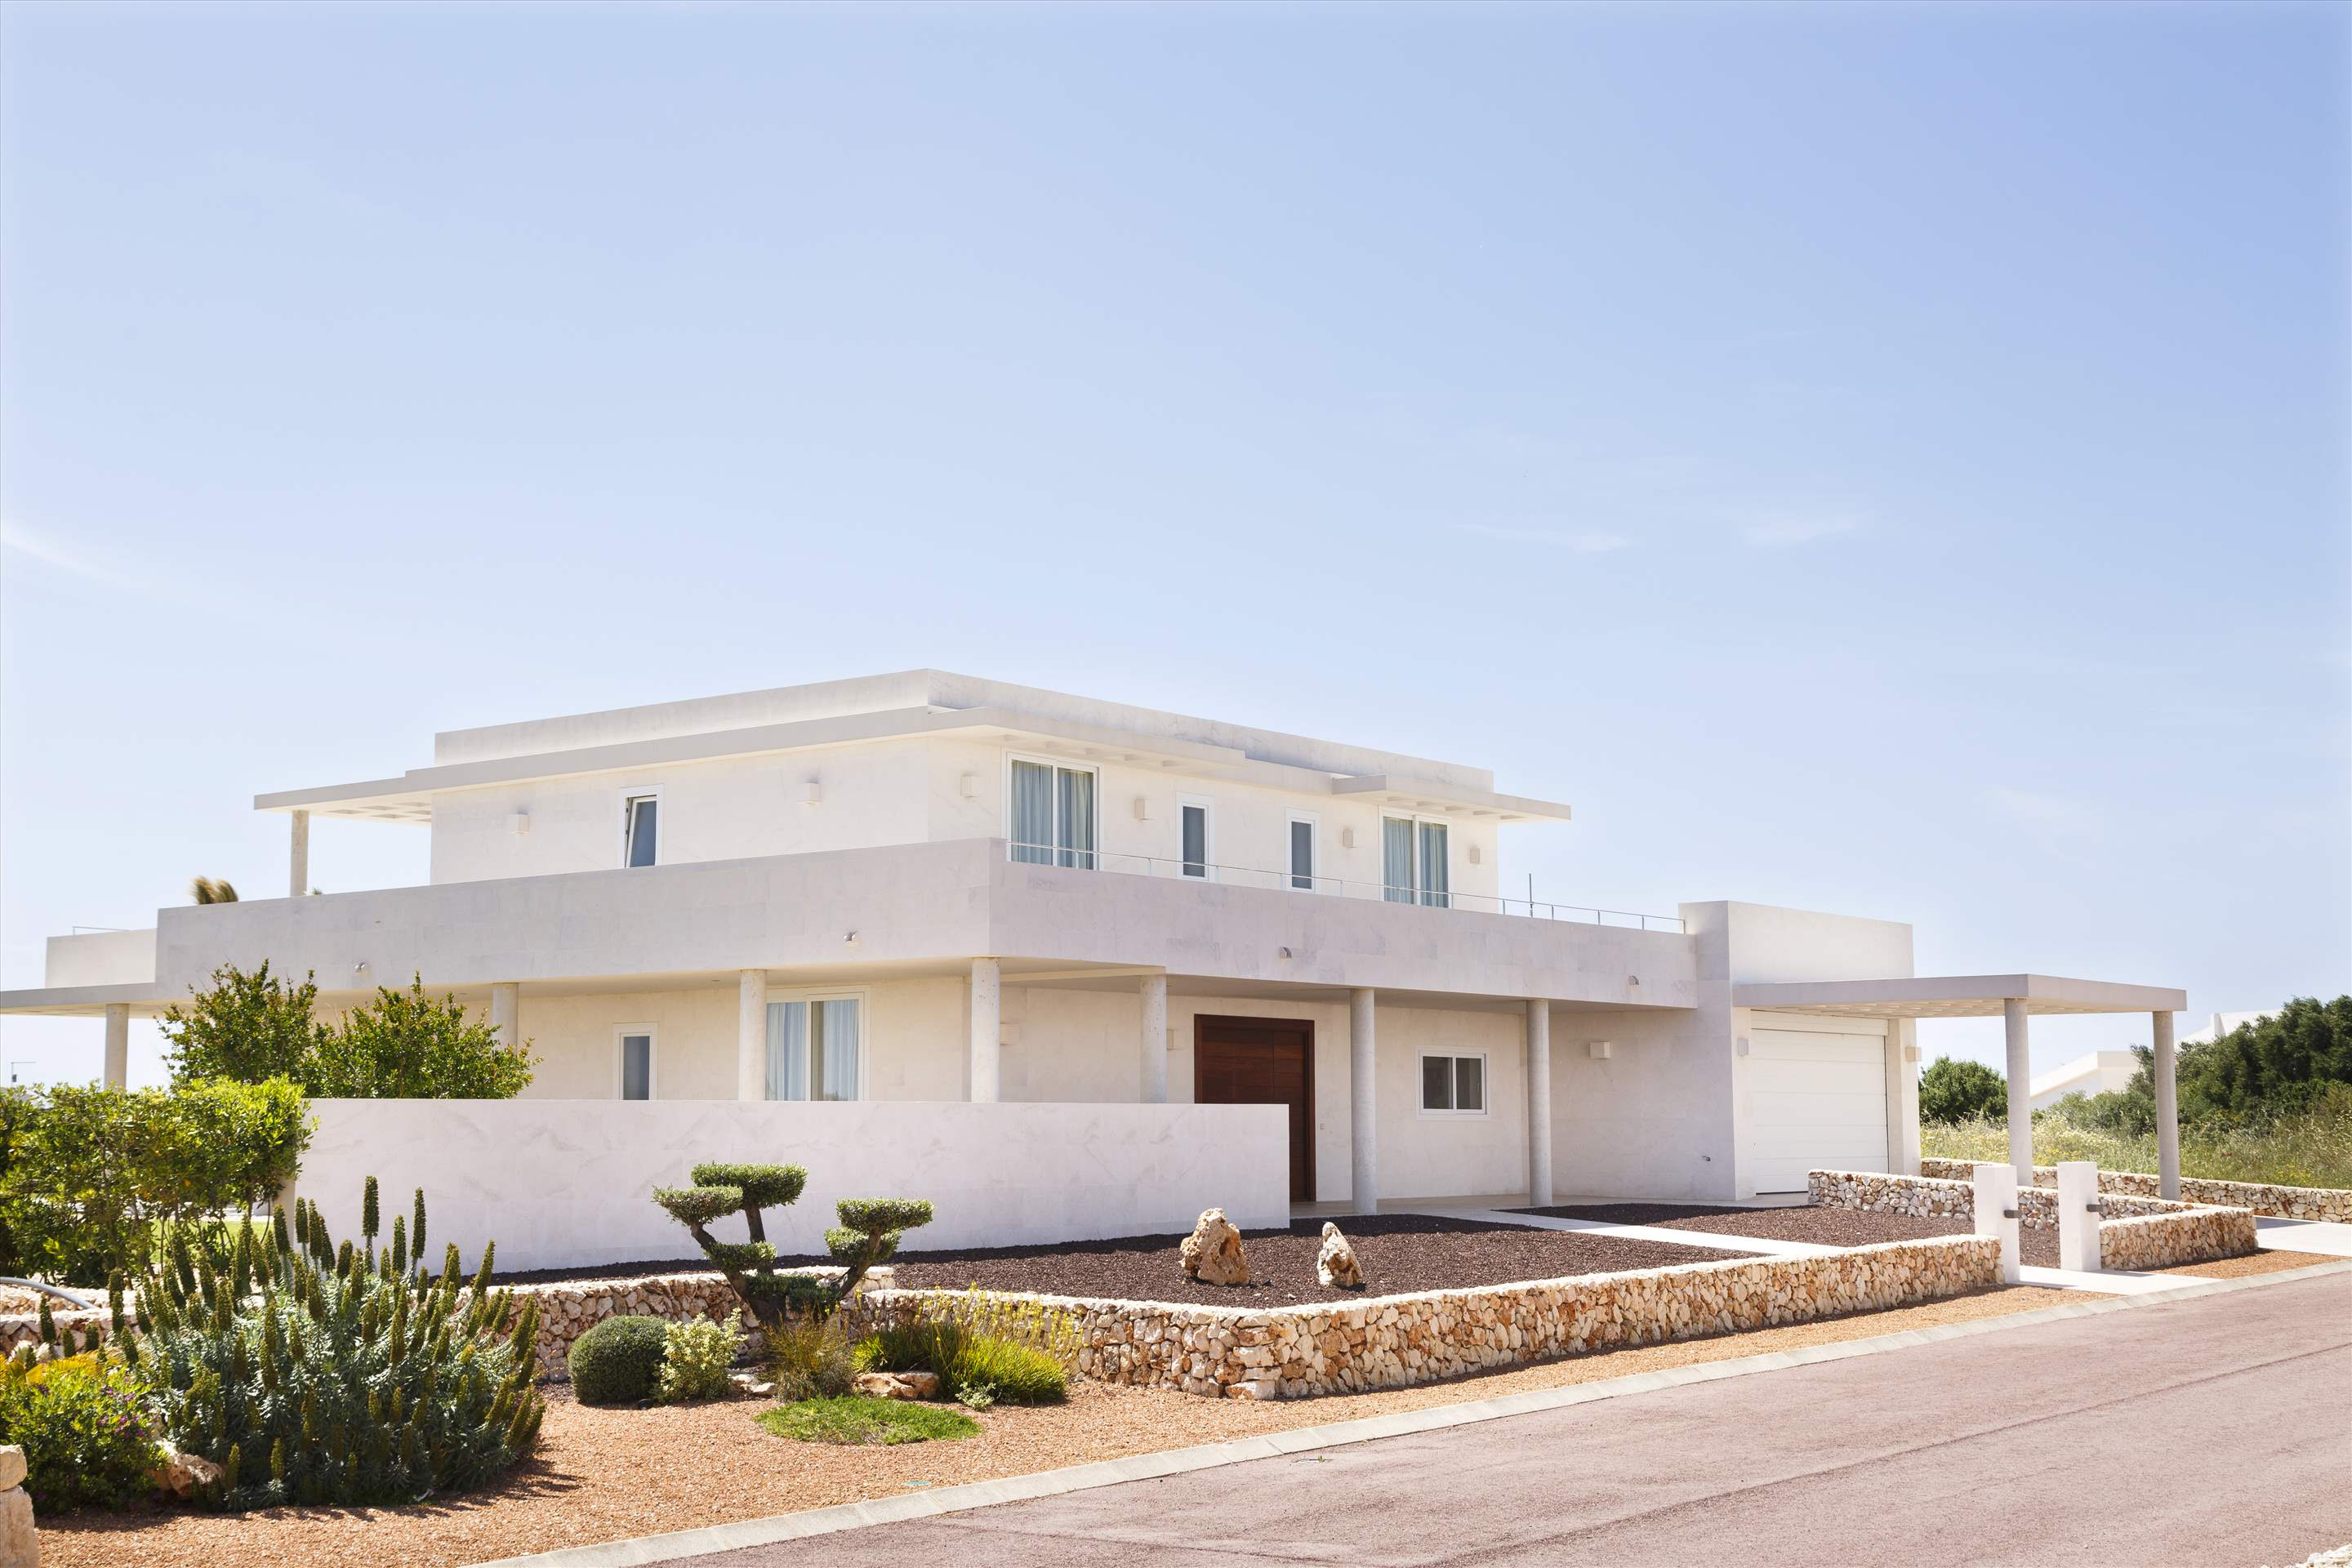 Binibeca Hills , 6 bedroom , 6 bedroom villa in Mahon, San Luis & South East, Menorca Photo #10